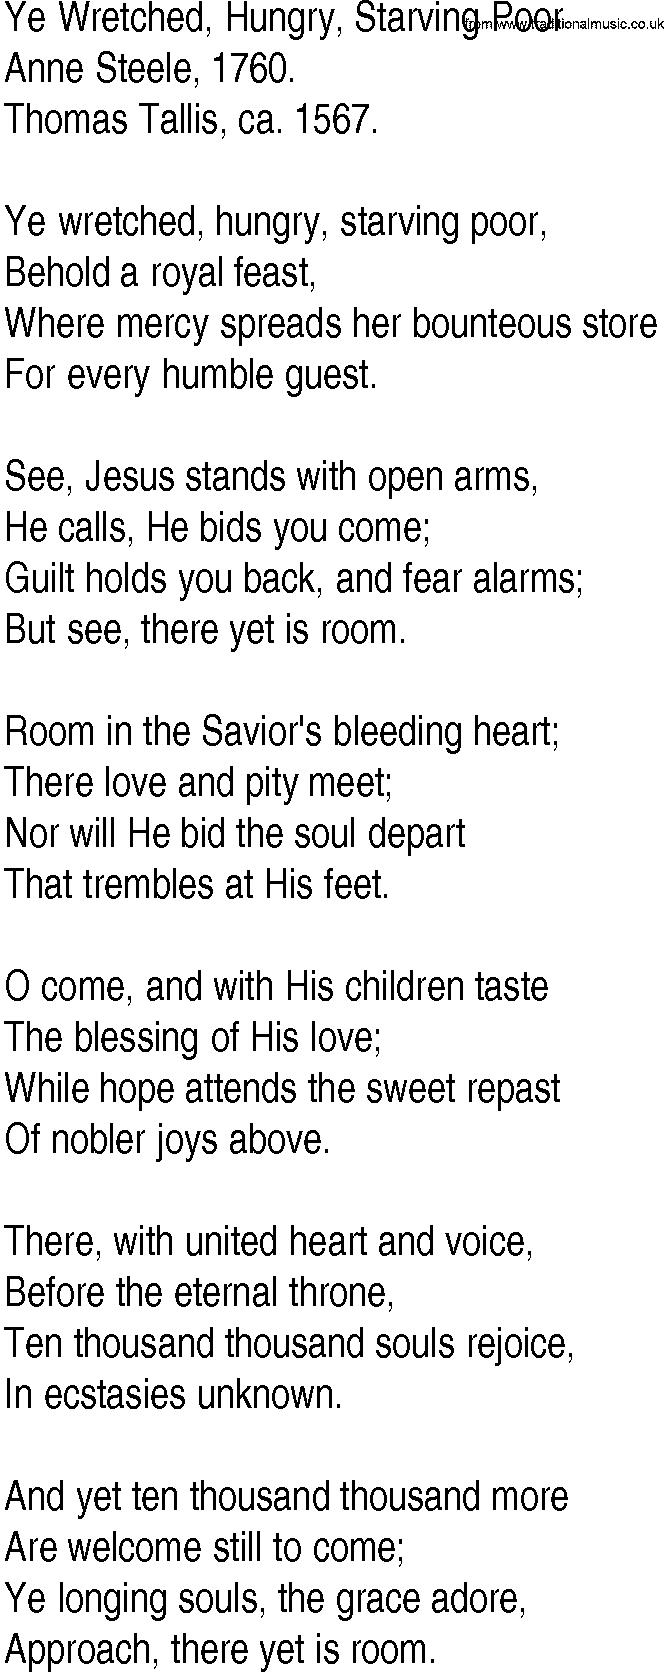 Hymn And Gospel Song Lyrics For Ye Wretched Hungry